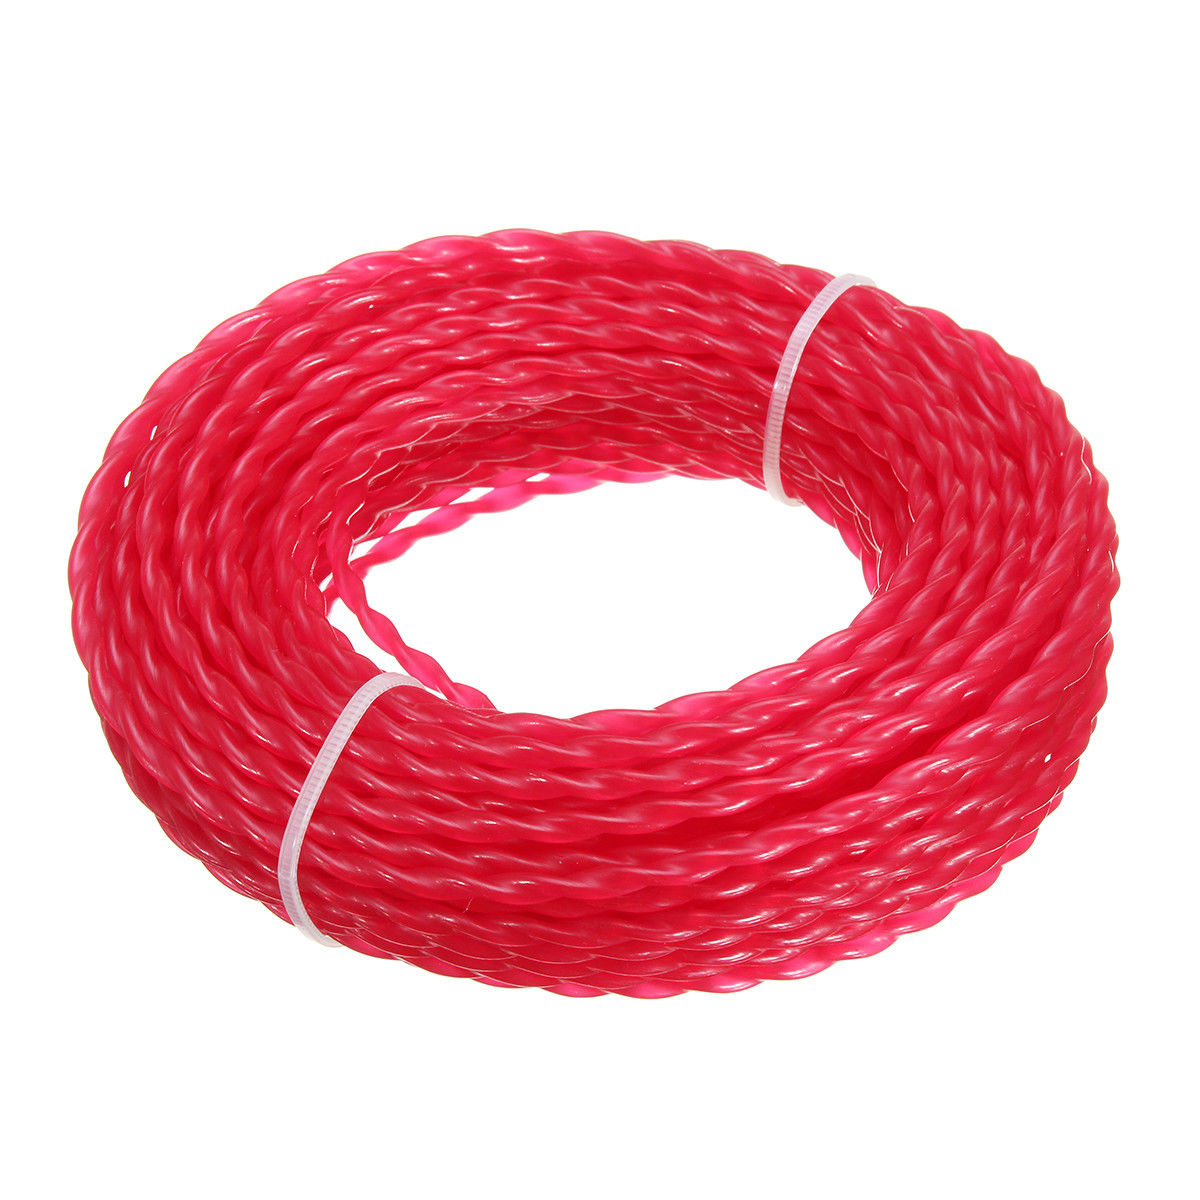 15m X 3mm Strimmer Line Brushcutter Parts Grass Trimmer Nylon Garden Cord Wire Round String Home Garden Tool Supplies